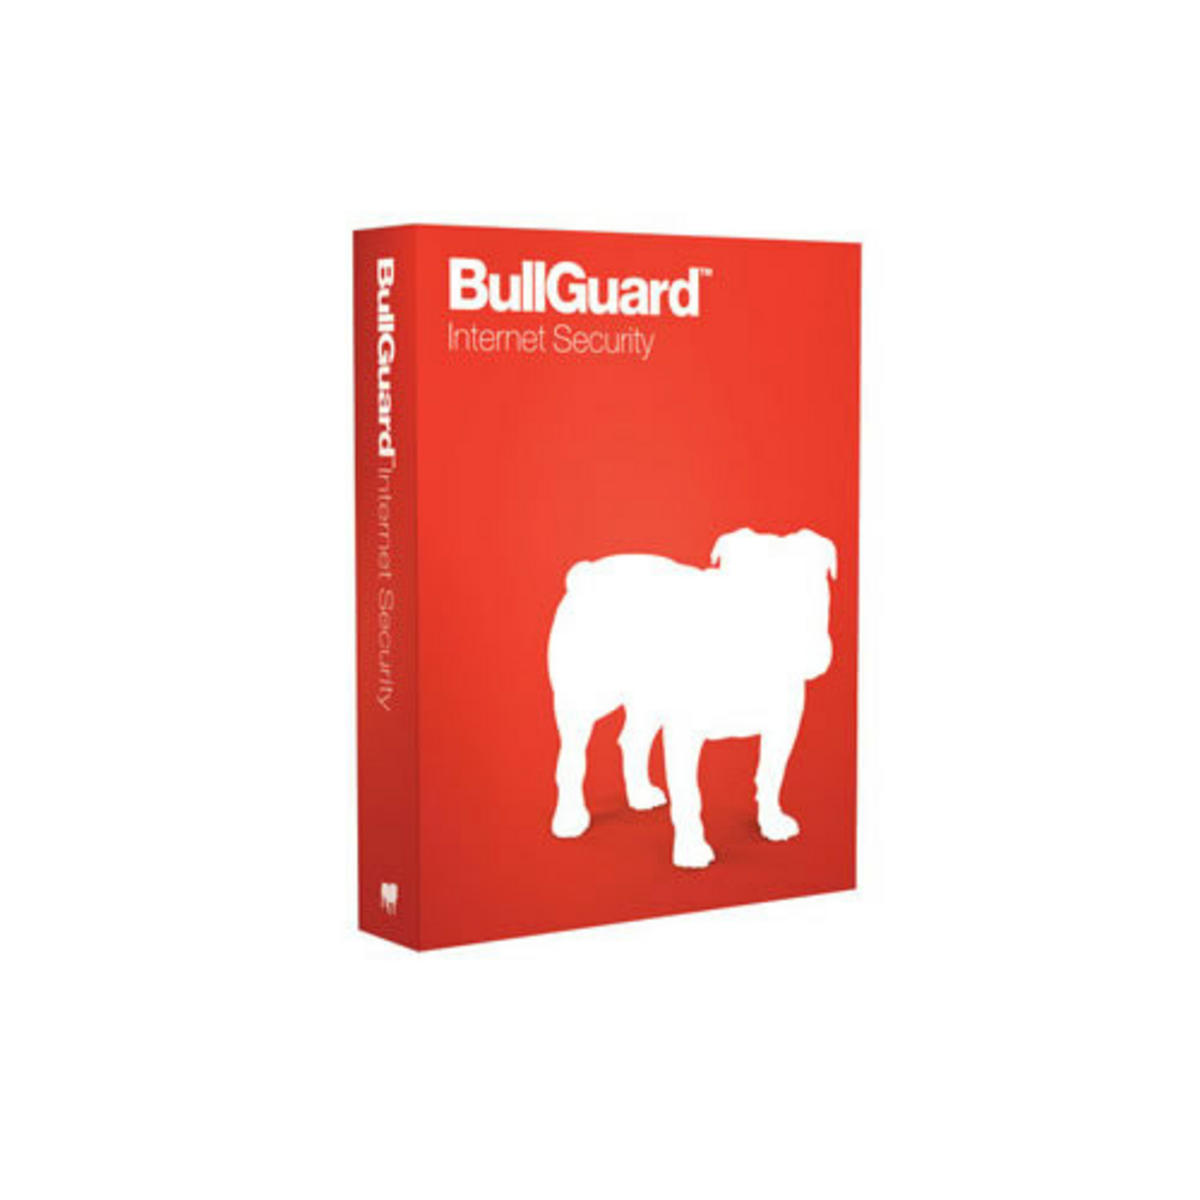 Bullguard Internet Security 2015 1 Year 3 User (Download)